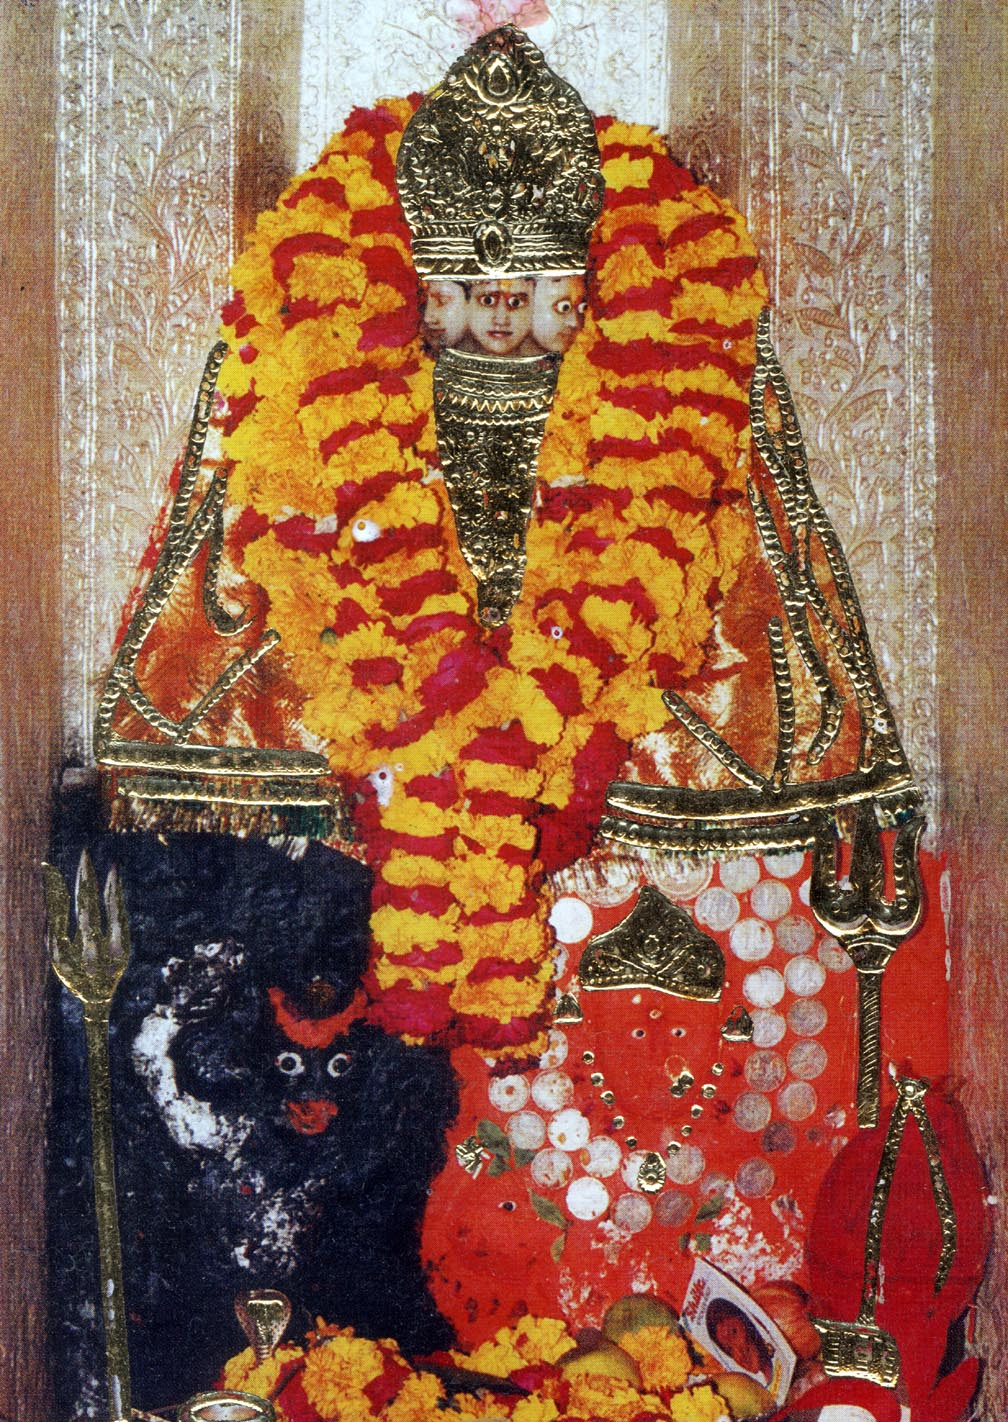 A stone statue heavily bedecked in bright flower garlands and gold plated jewlery